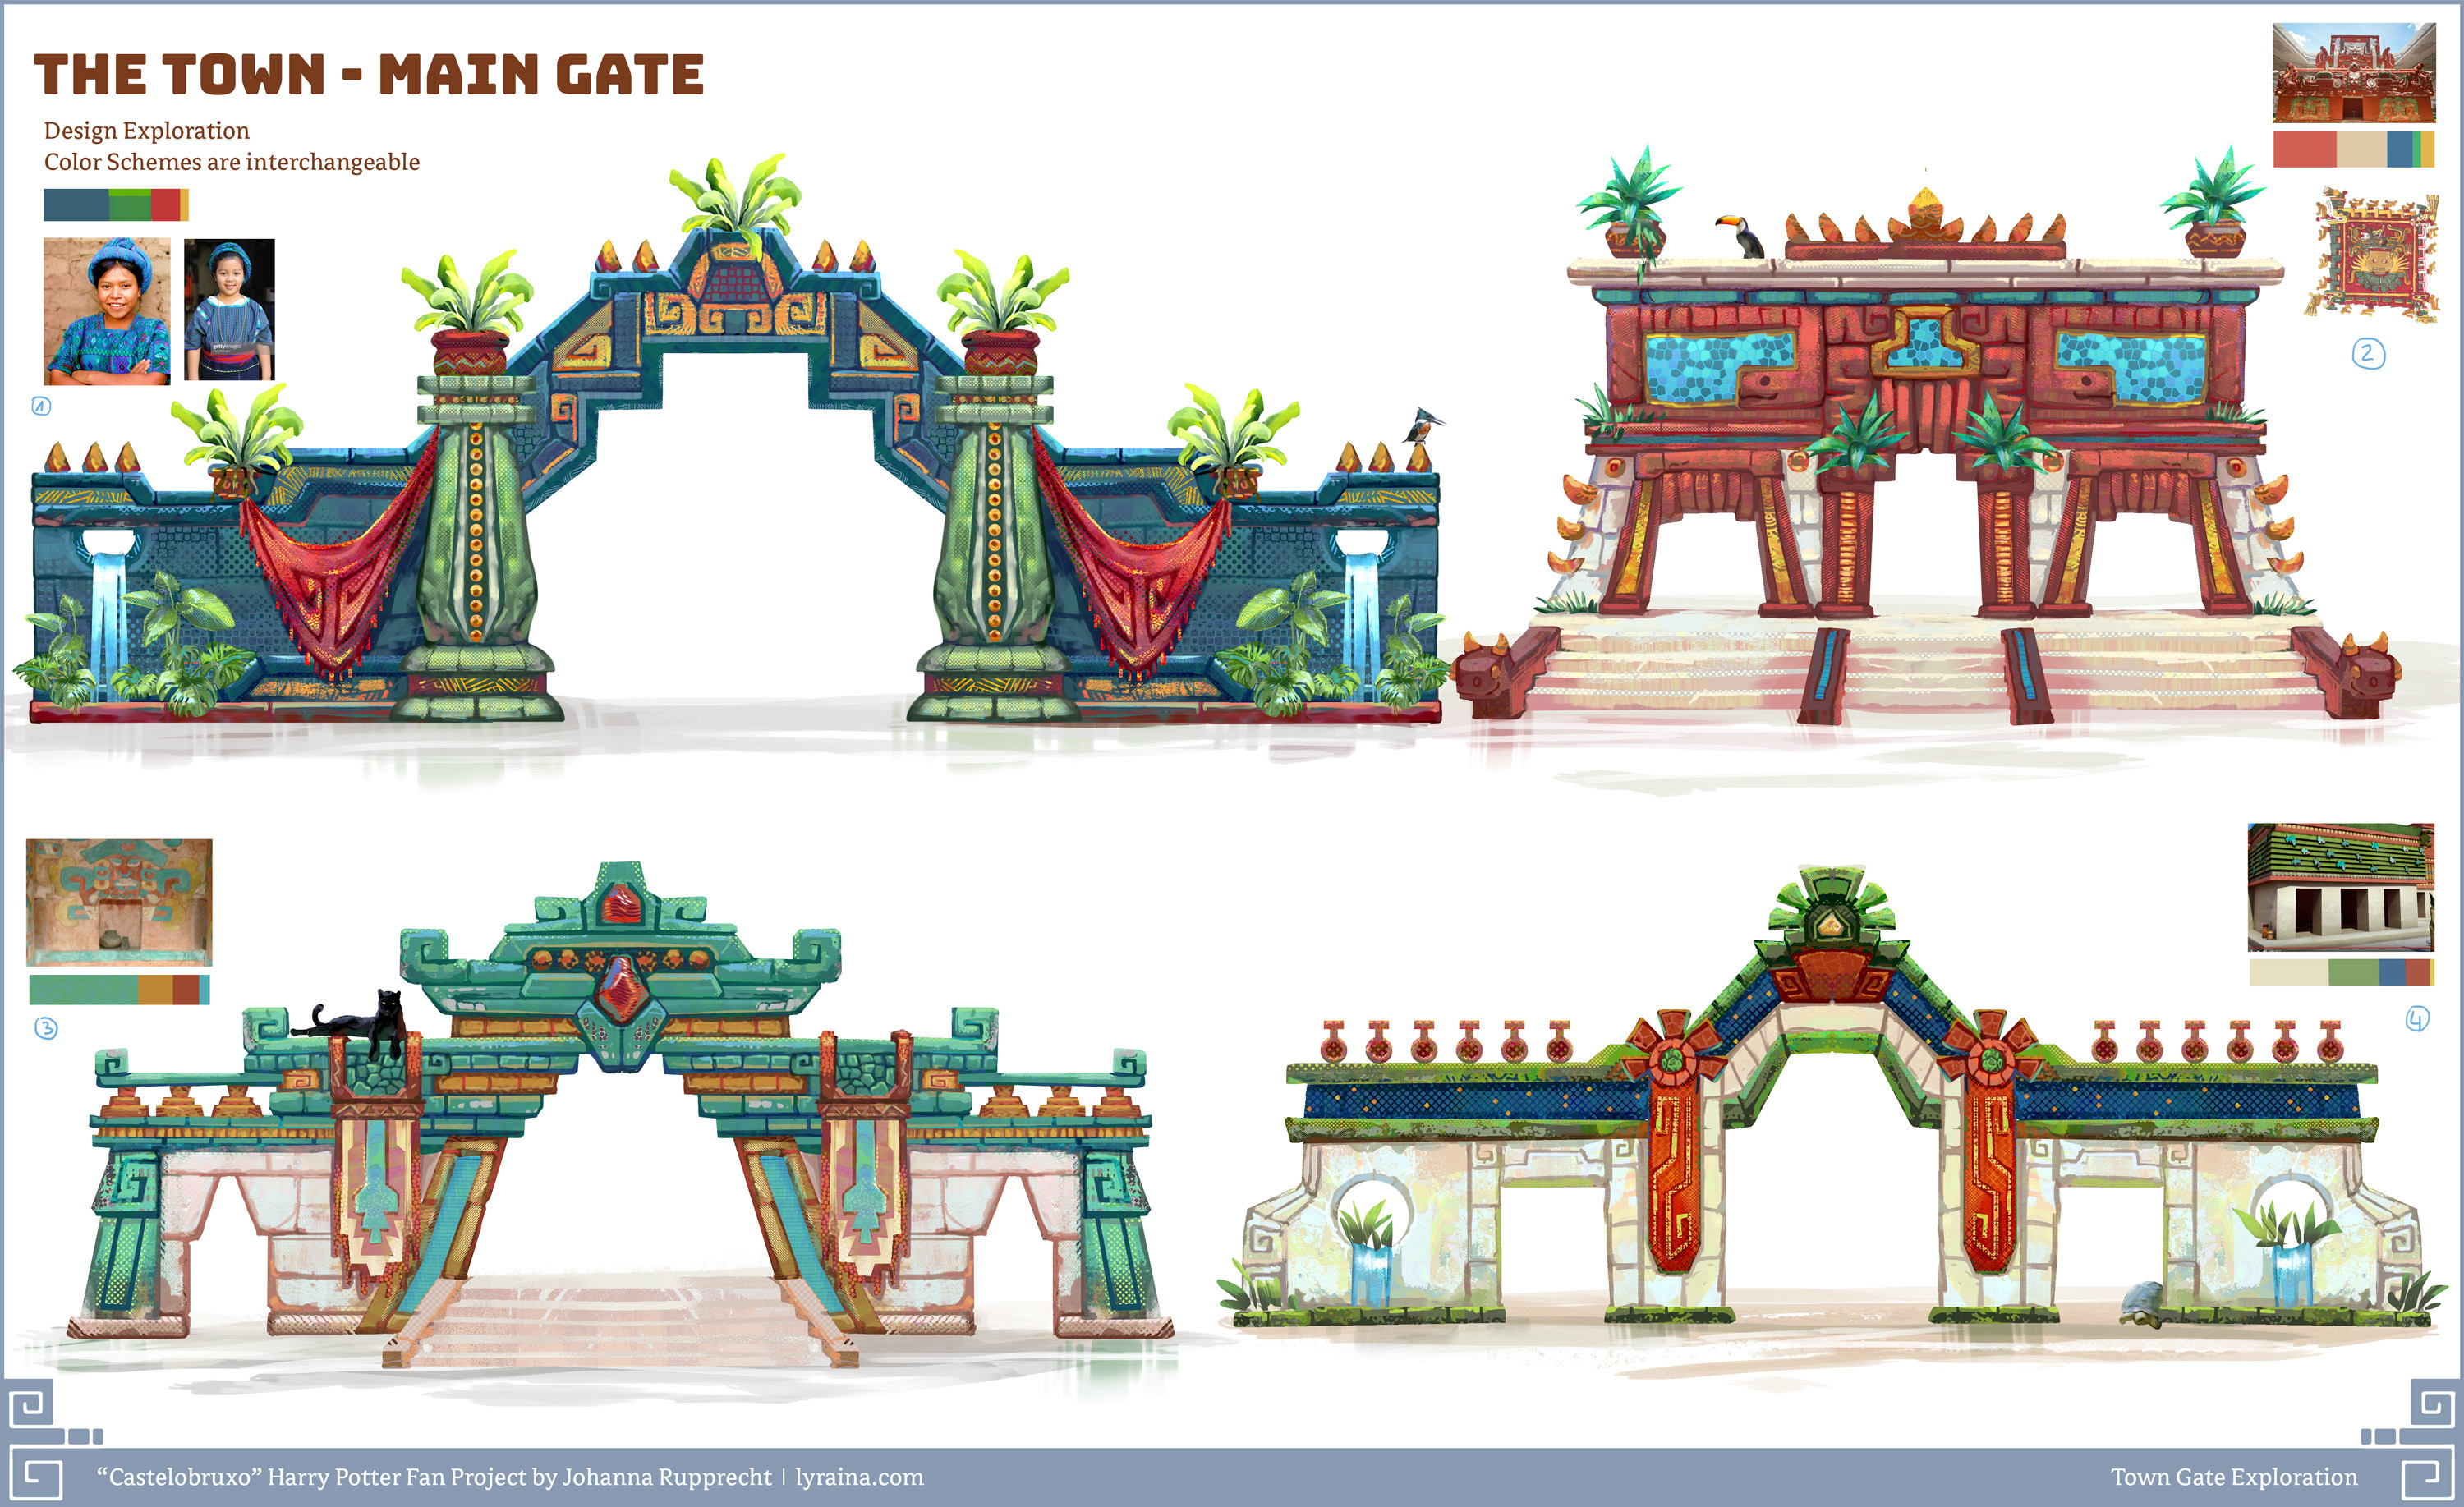 Town Gate, Design & Color Scheme exploration